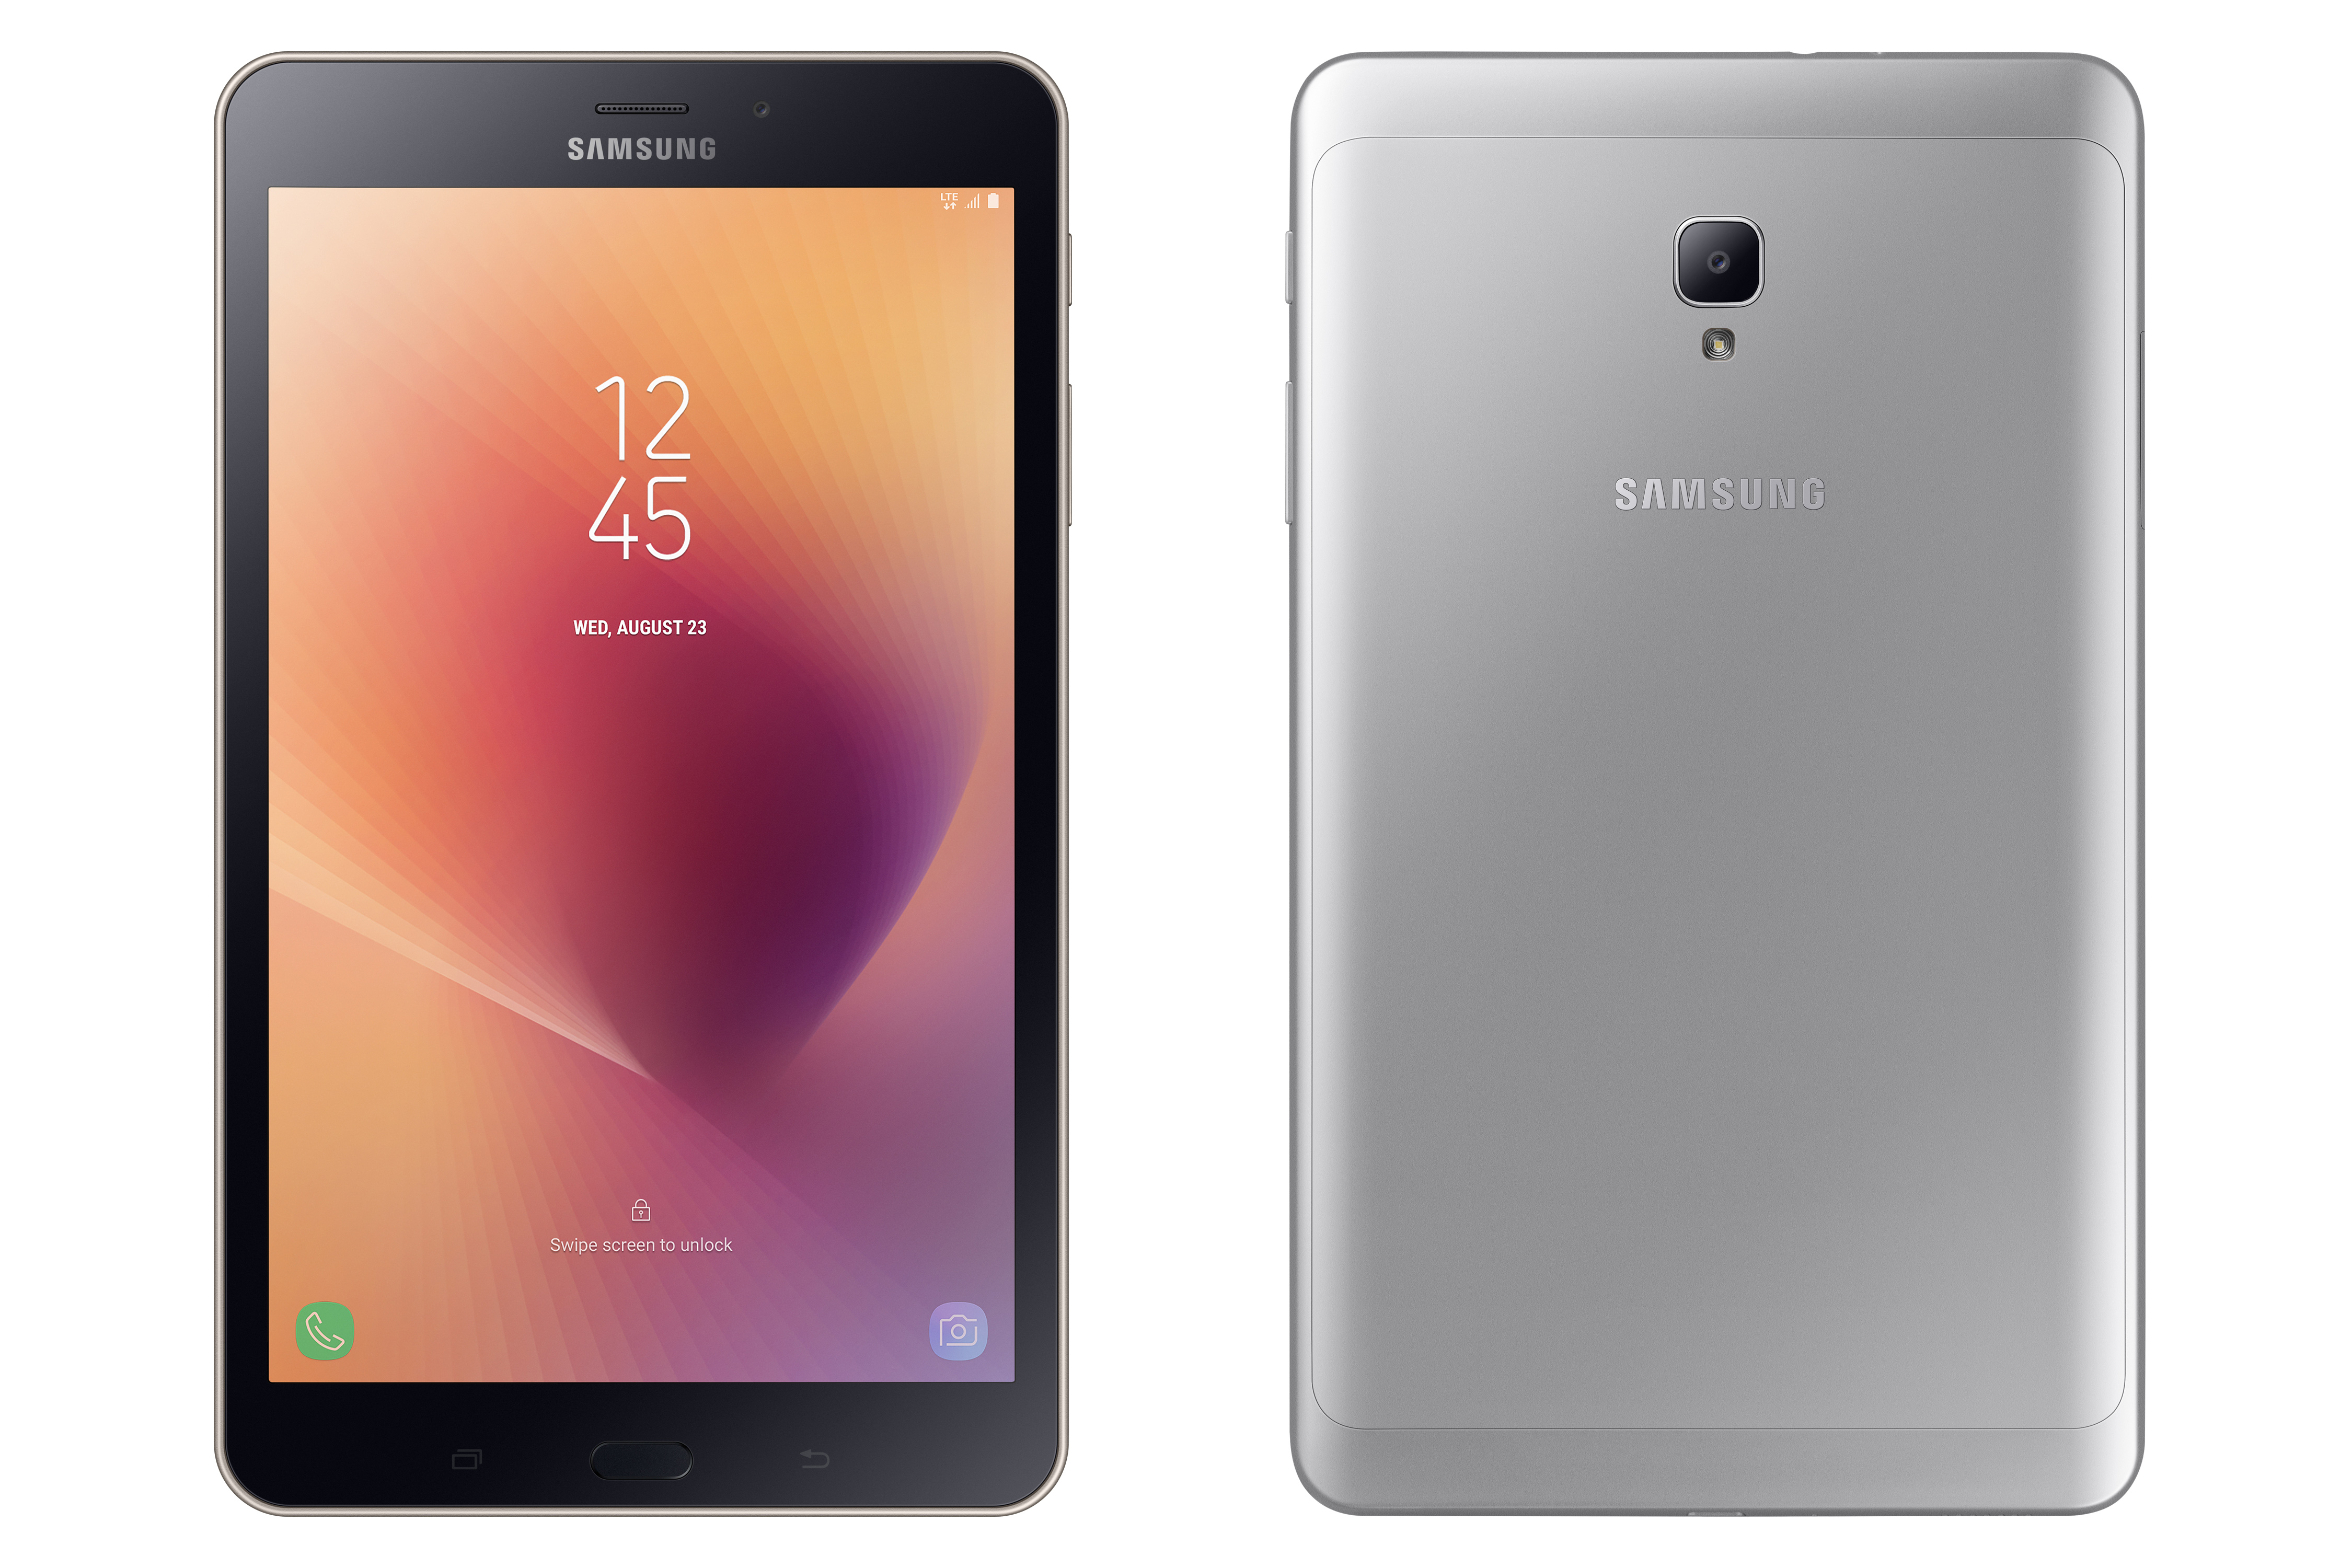 Android 9 Pie rolling out now to Samsung Galaxy Tab S3, Tab A 2017